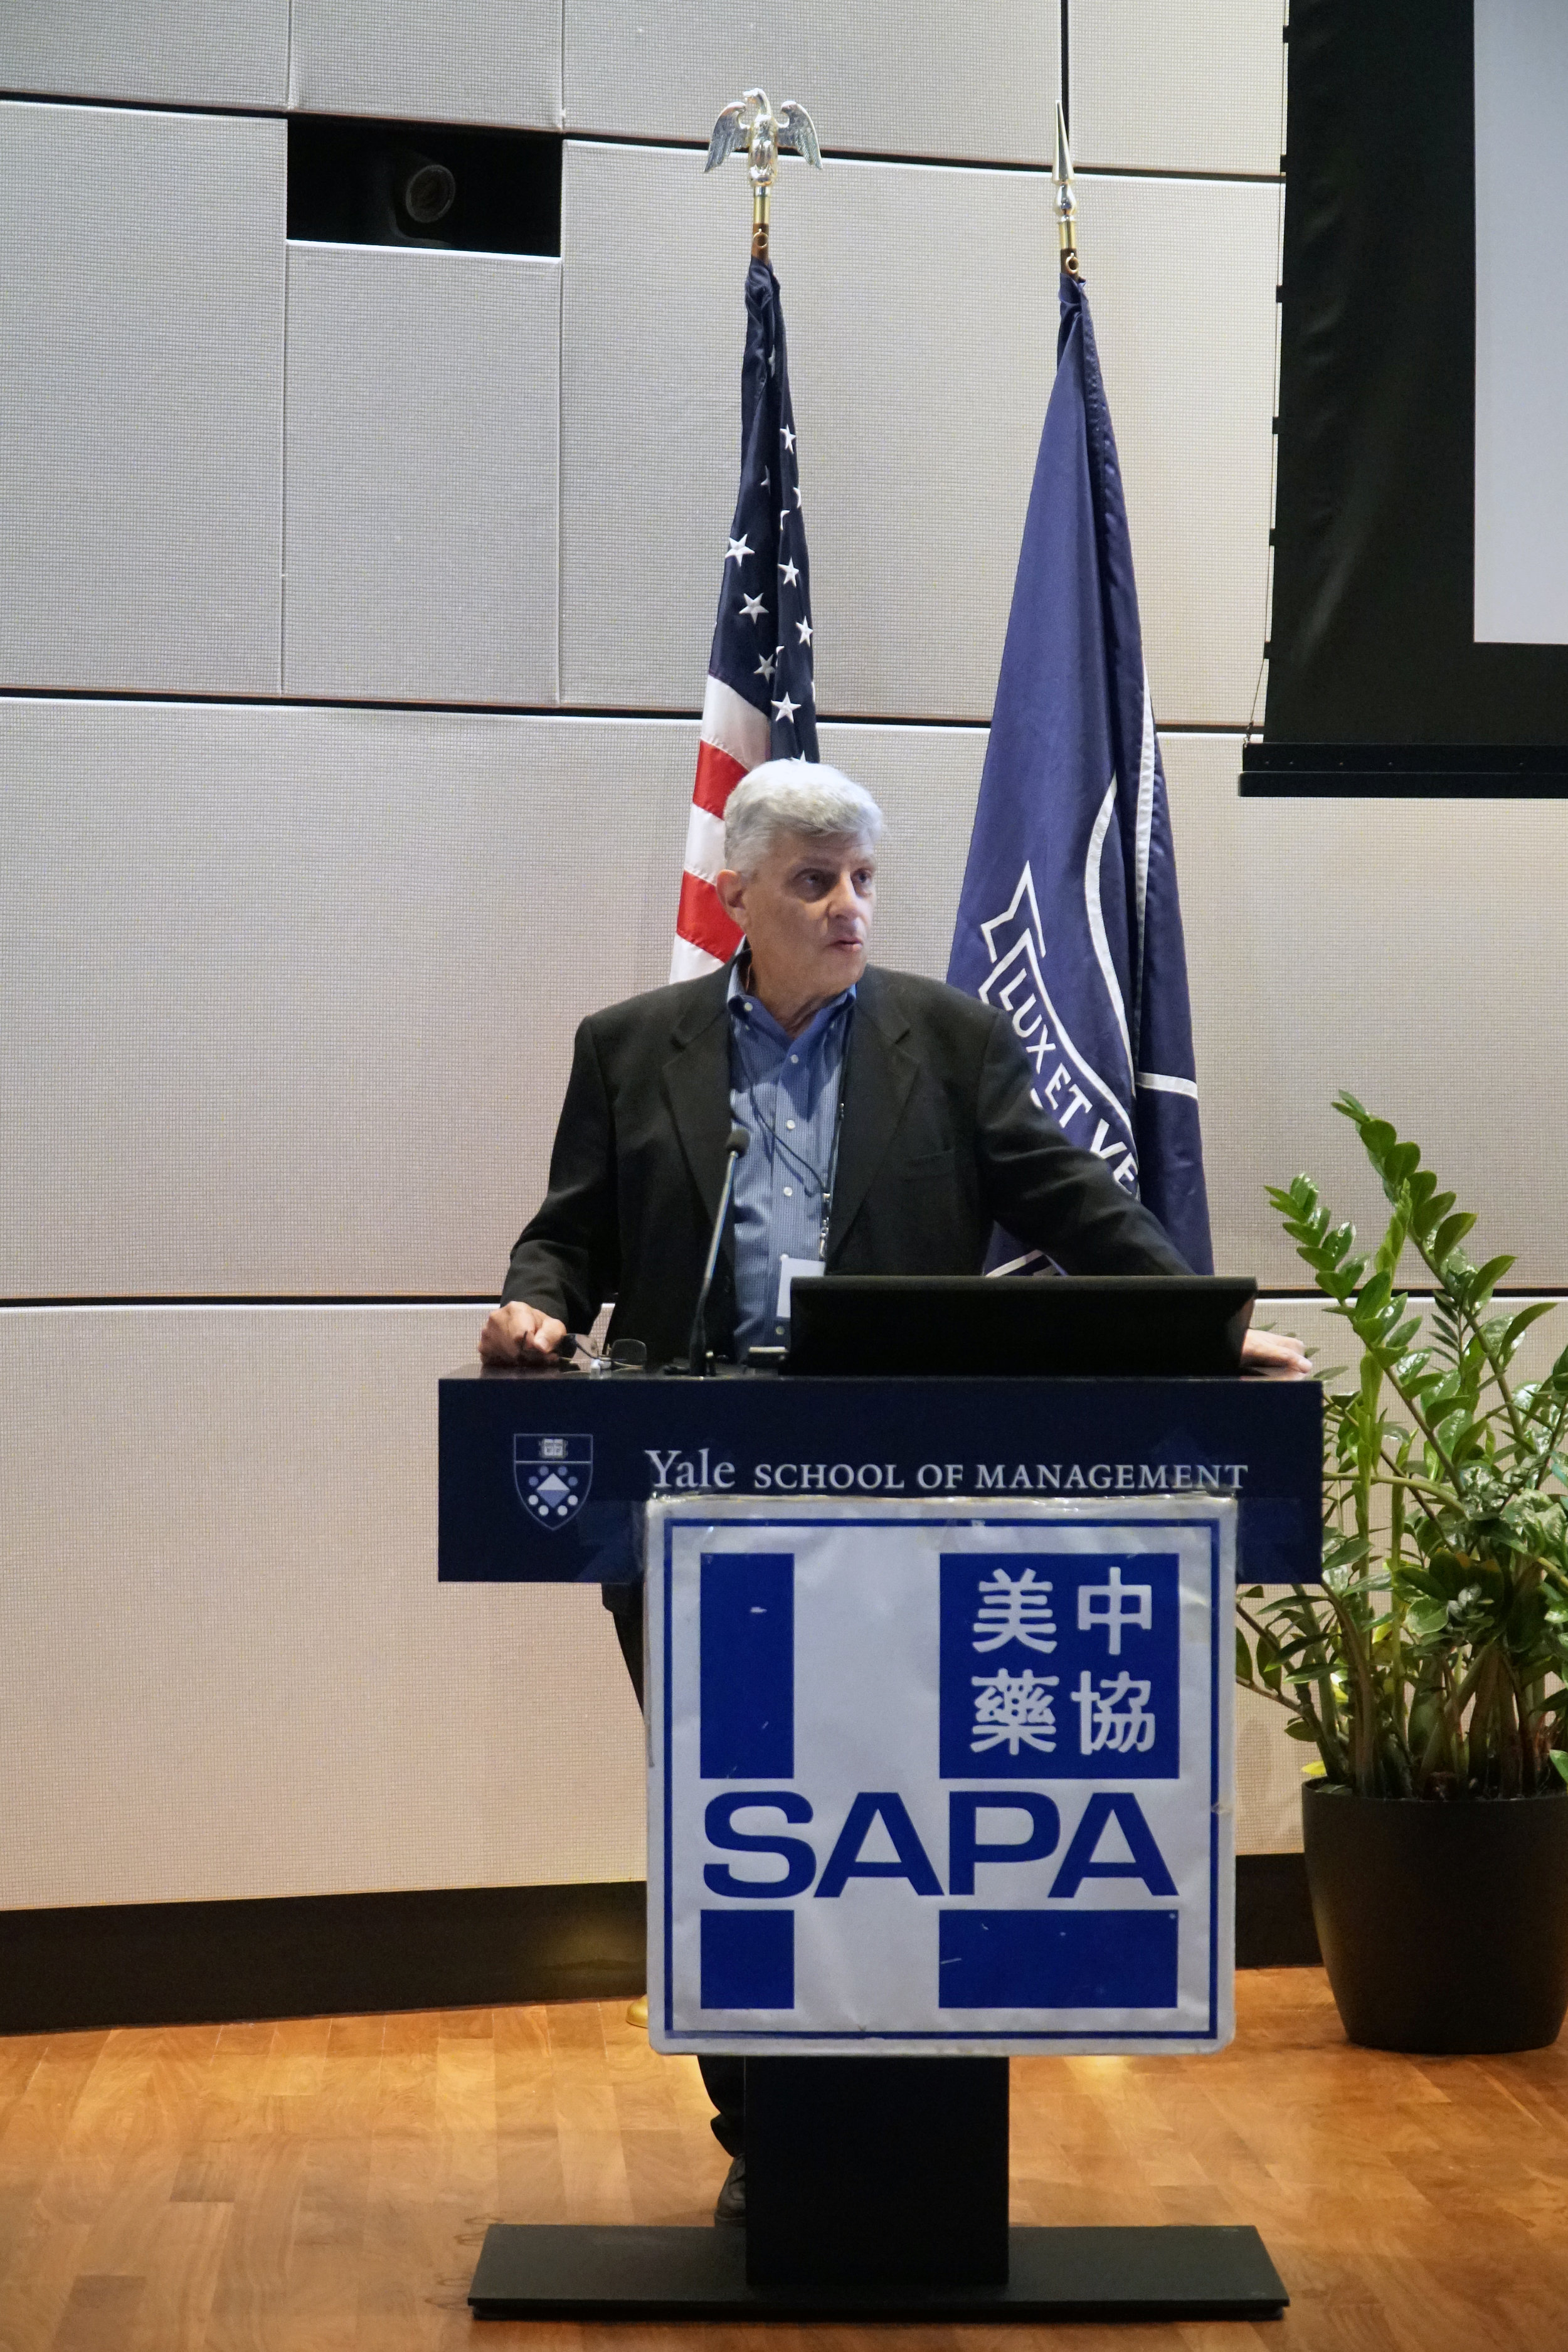 Peter Farina, PhD, Executive in Residence, Canaan Partners, gave an opening speech on the conference.